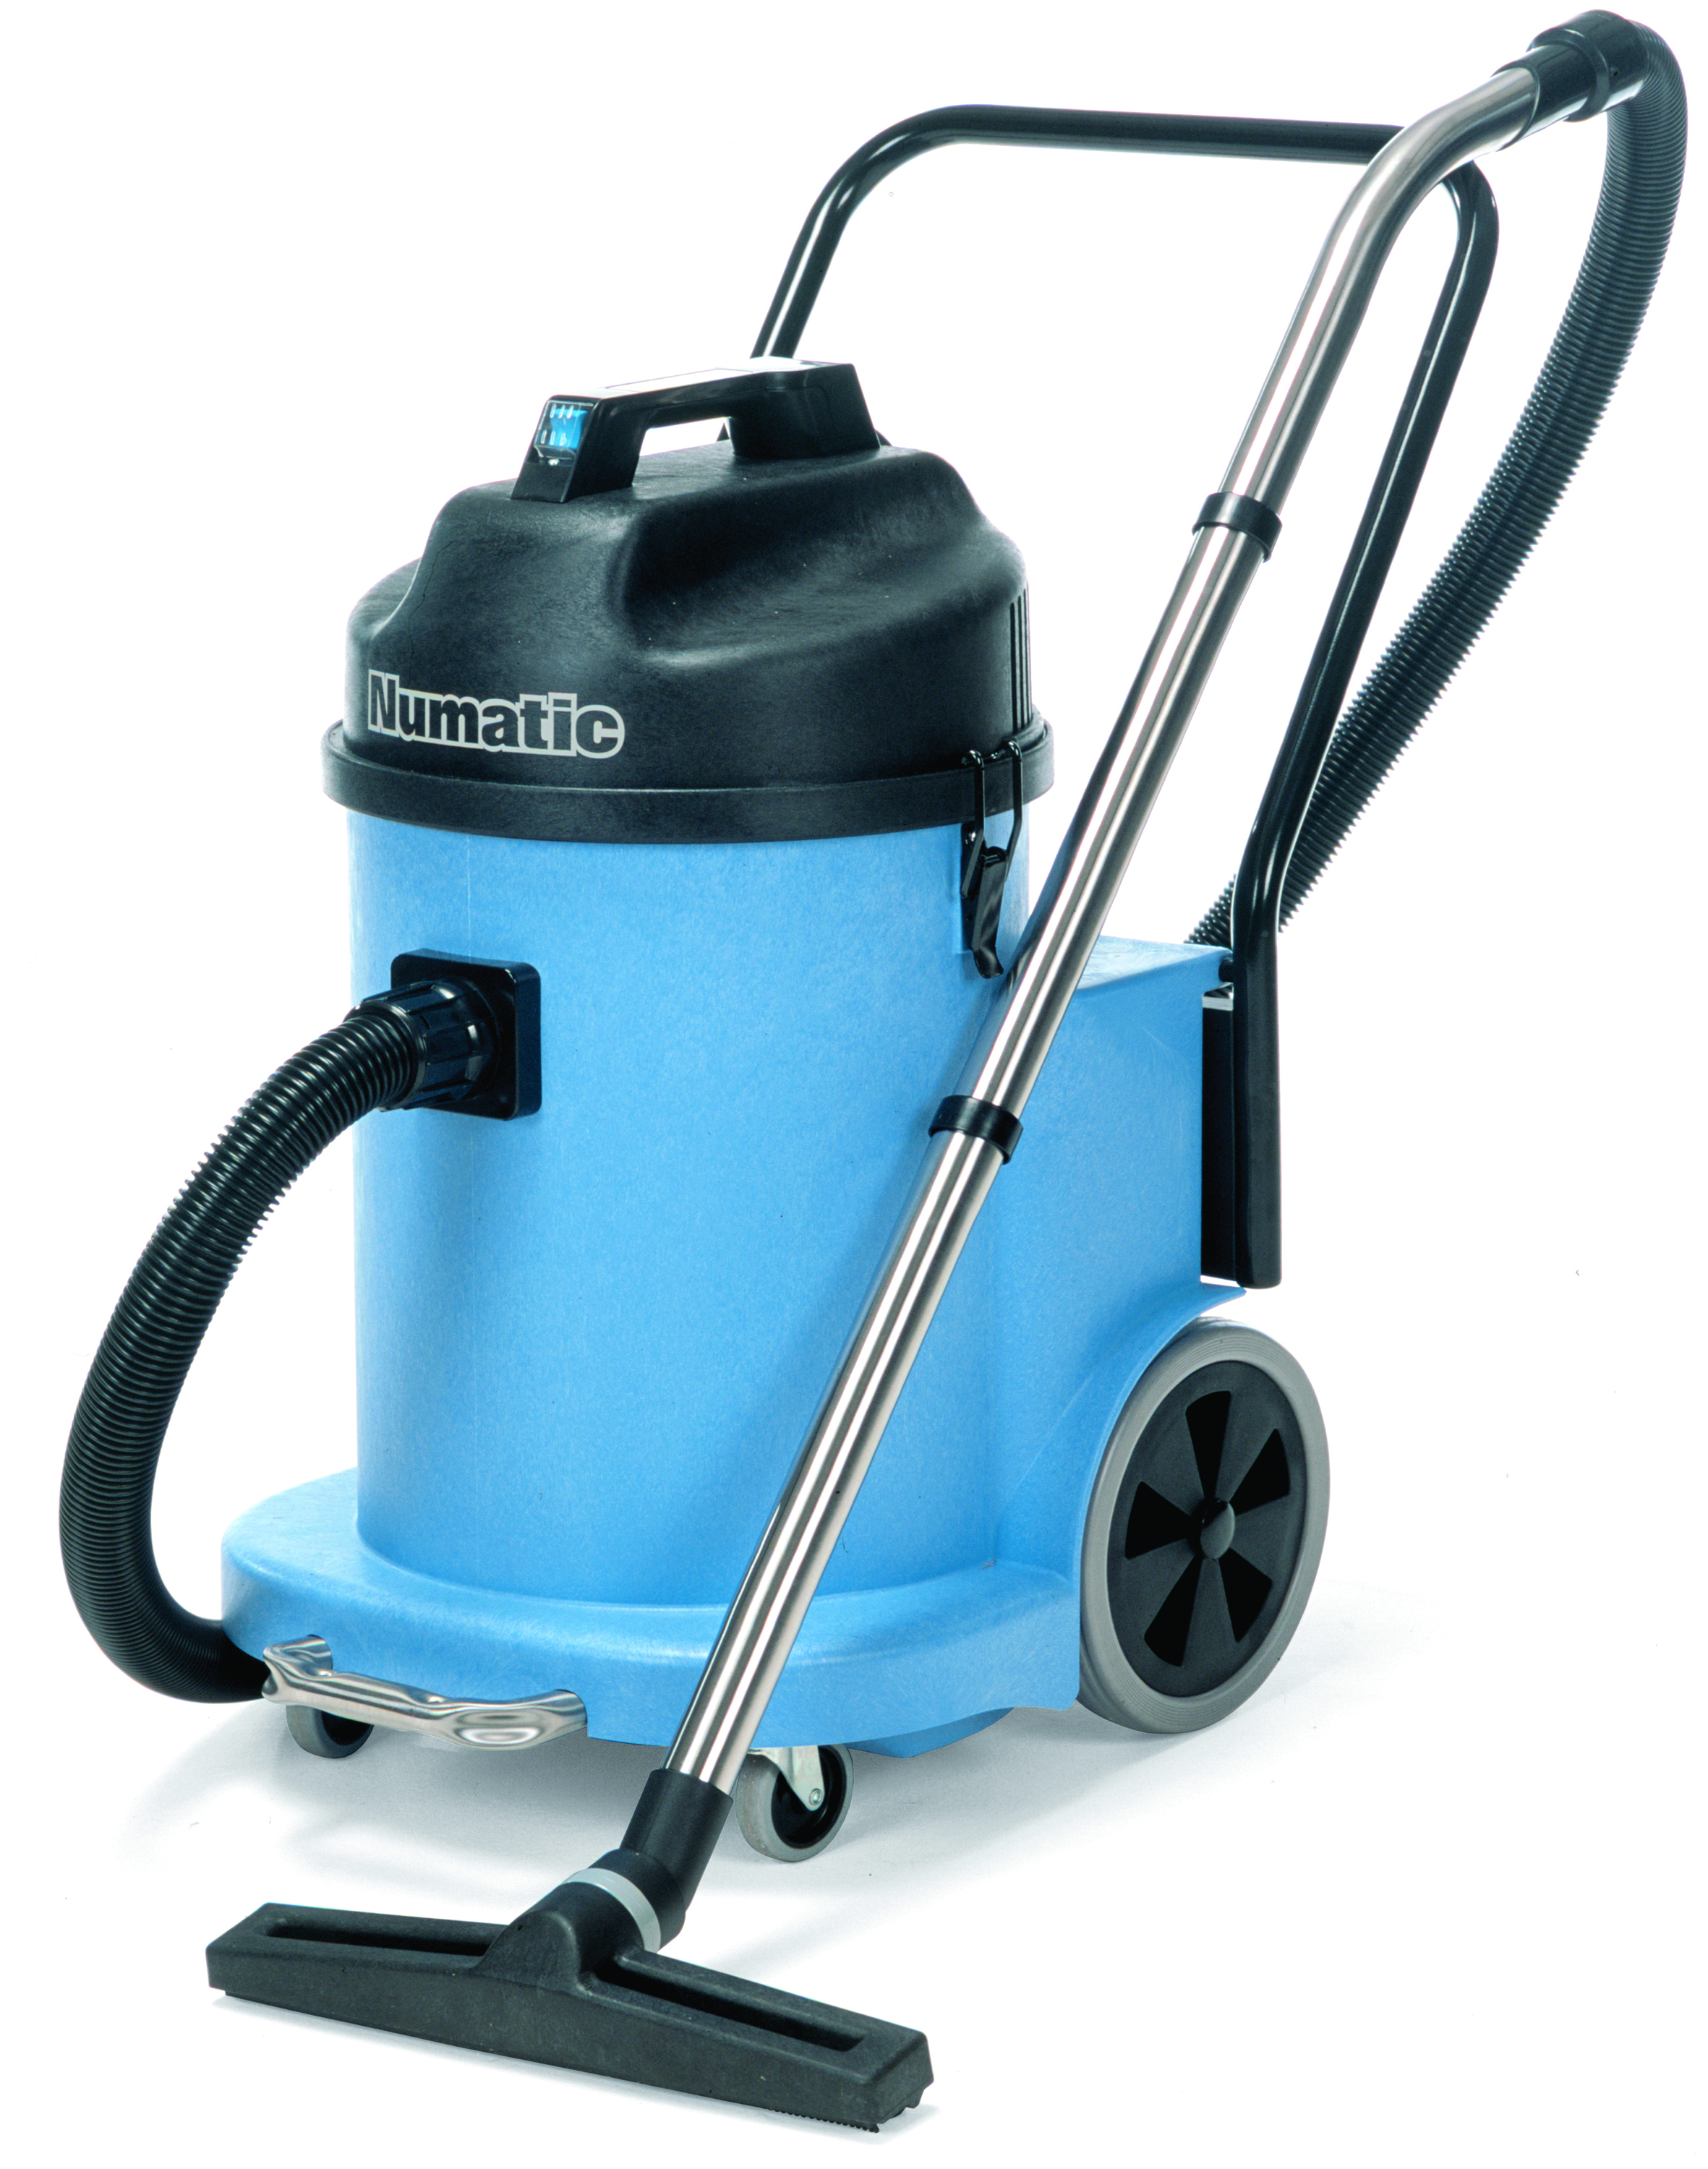 Numatic WVD900-2 Industrial Wet Dry Vac 2400W 40L Dry 32L Wet includes kit